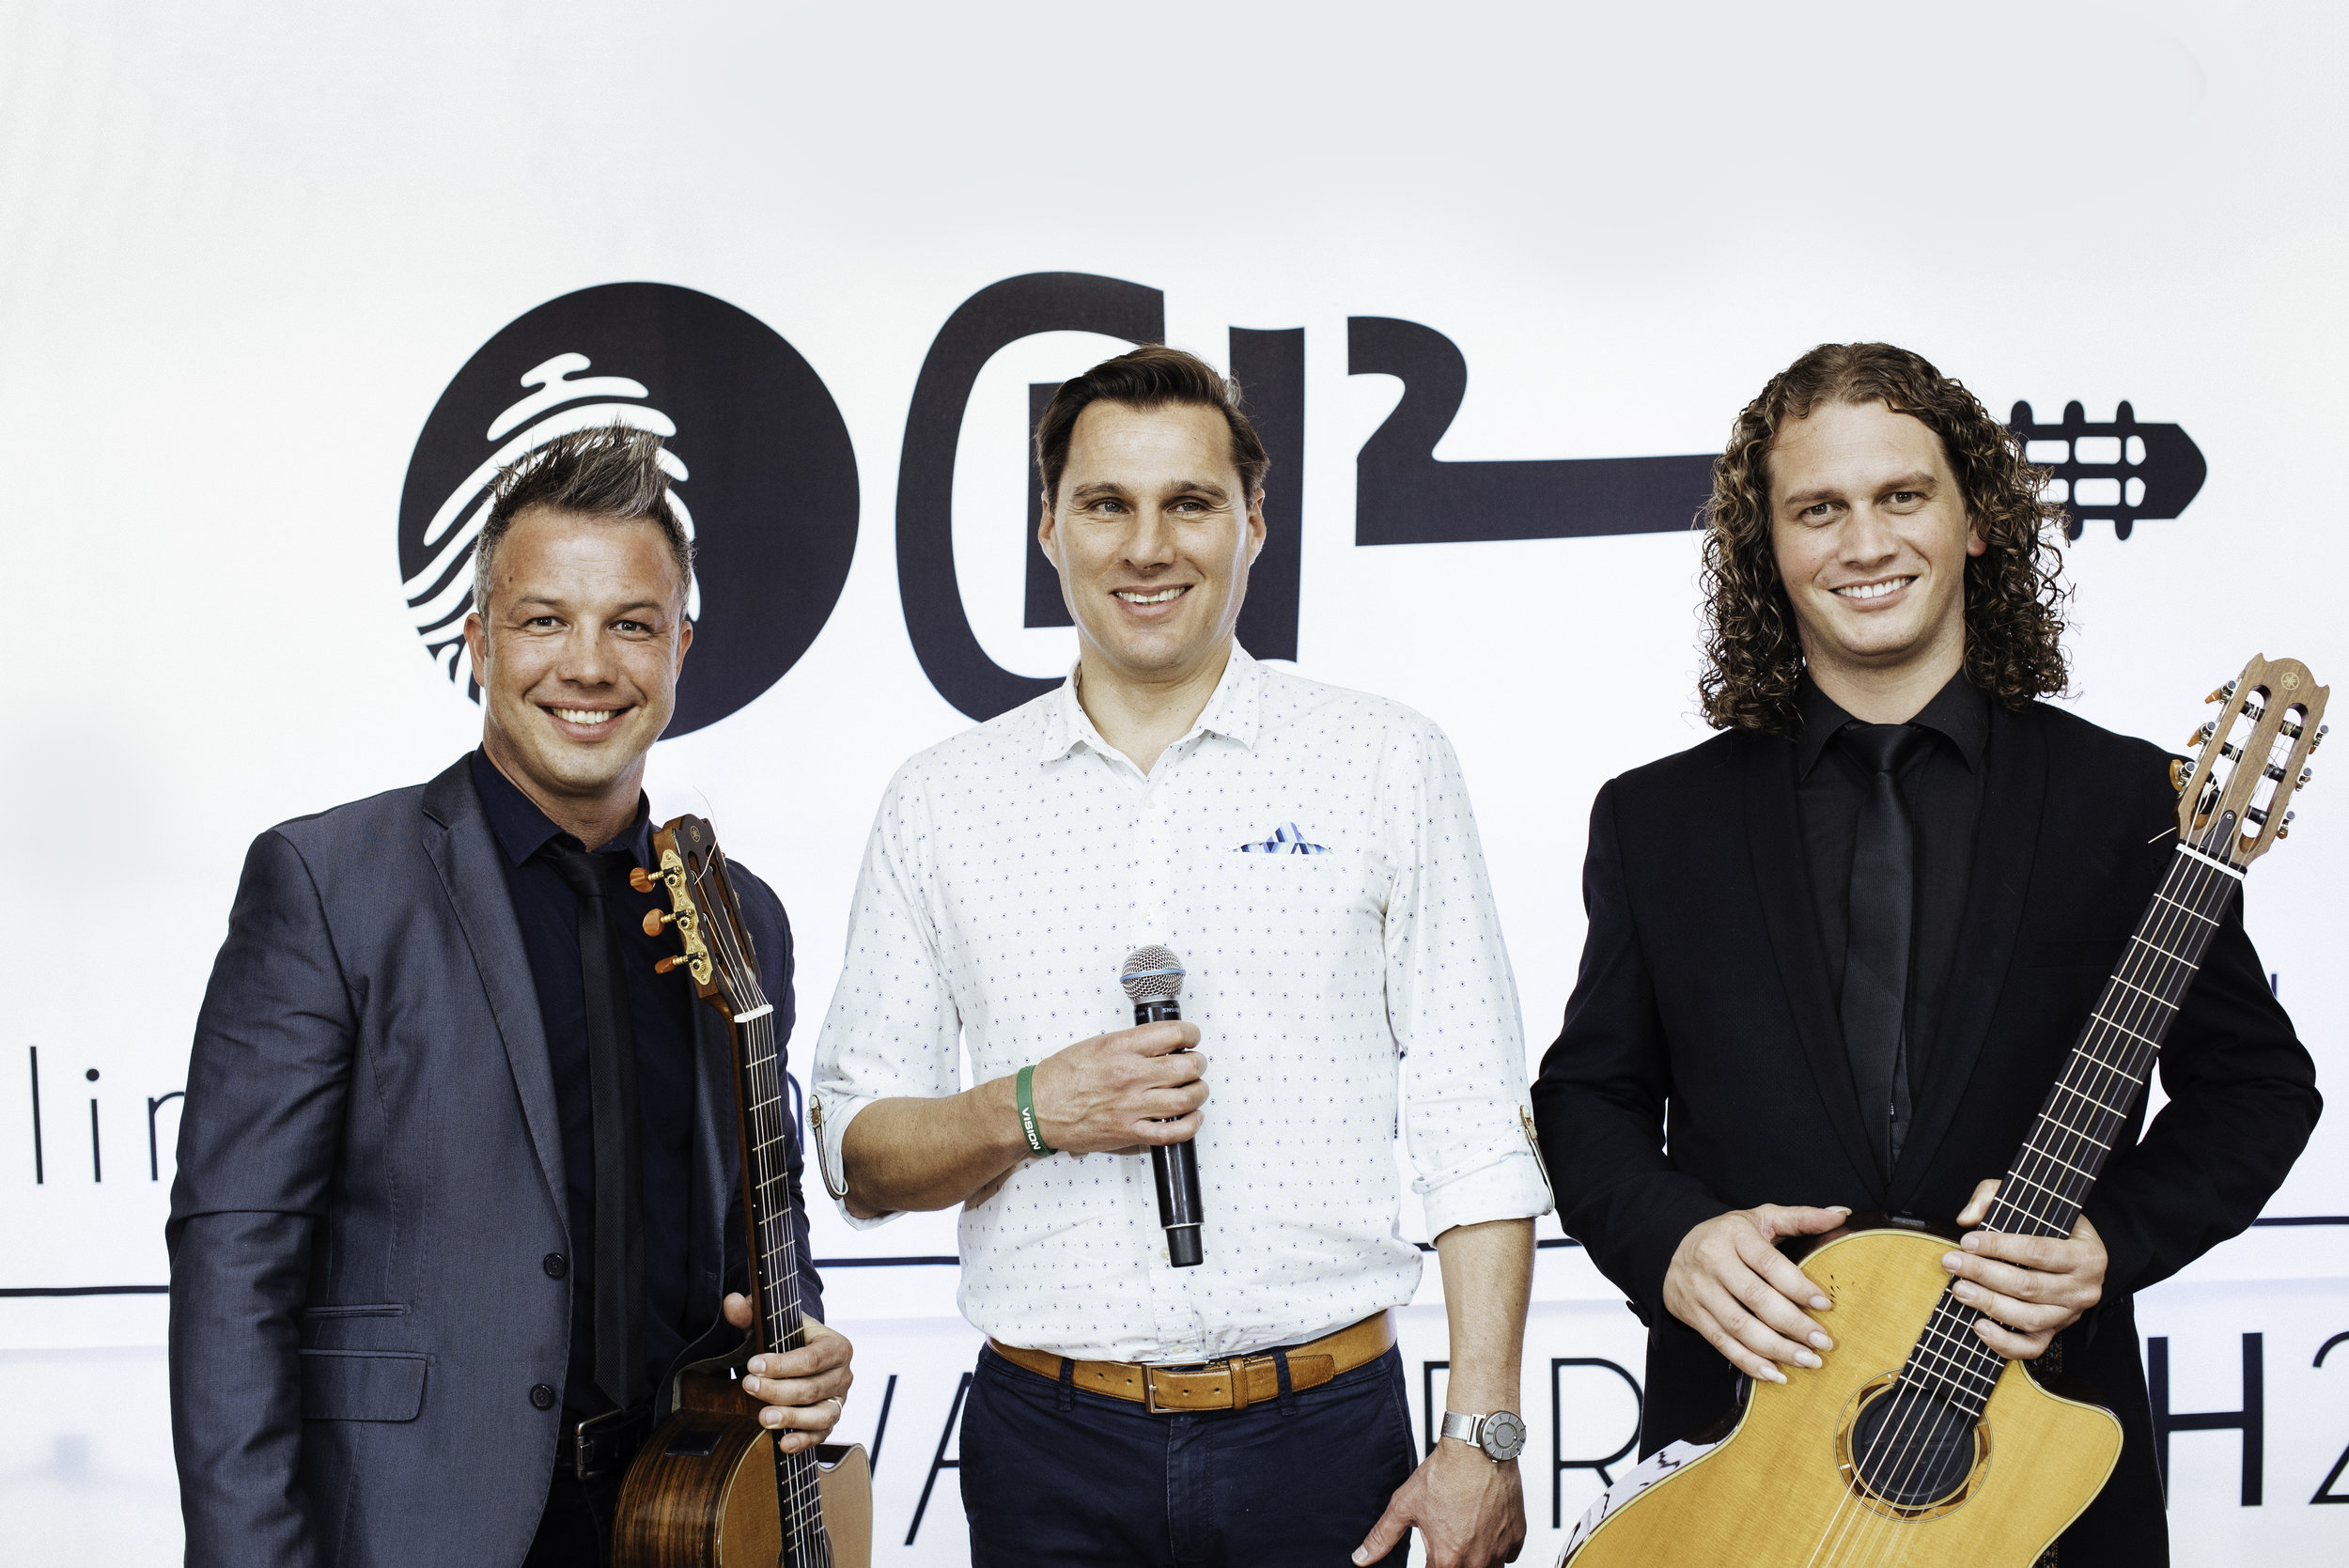 Image of Hein standing in between the two band members of CH2